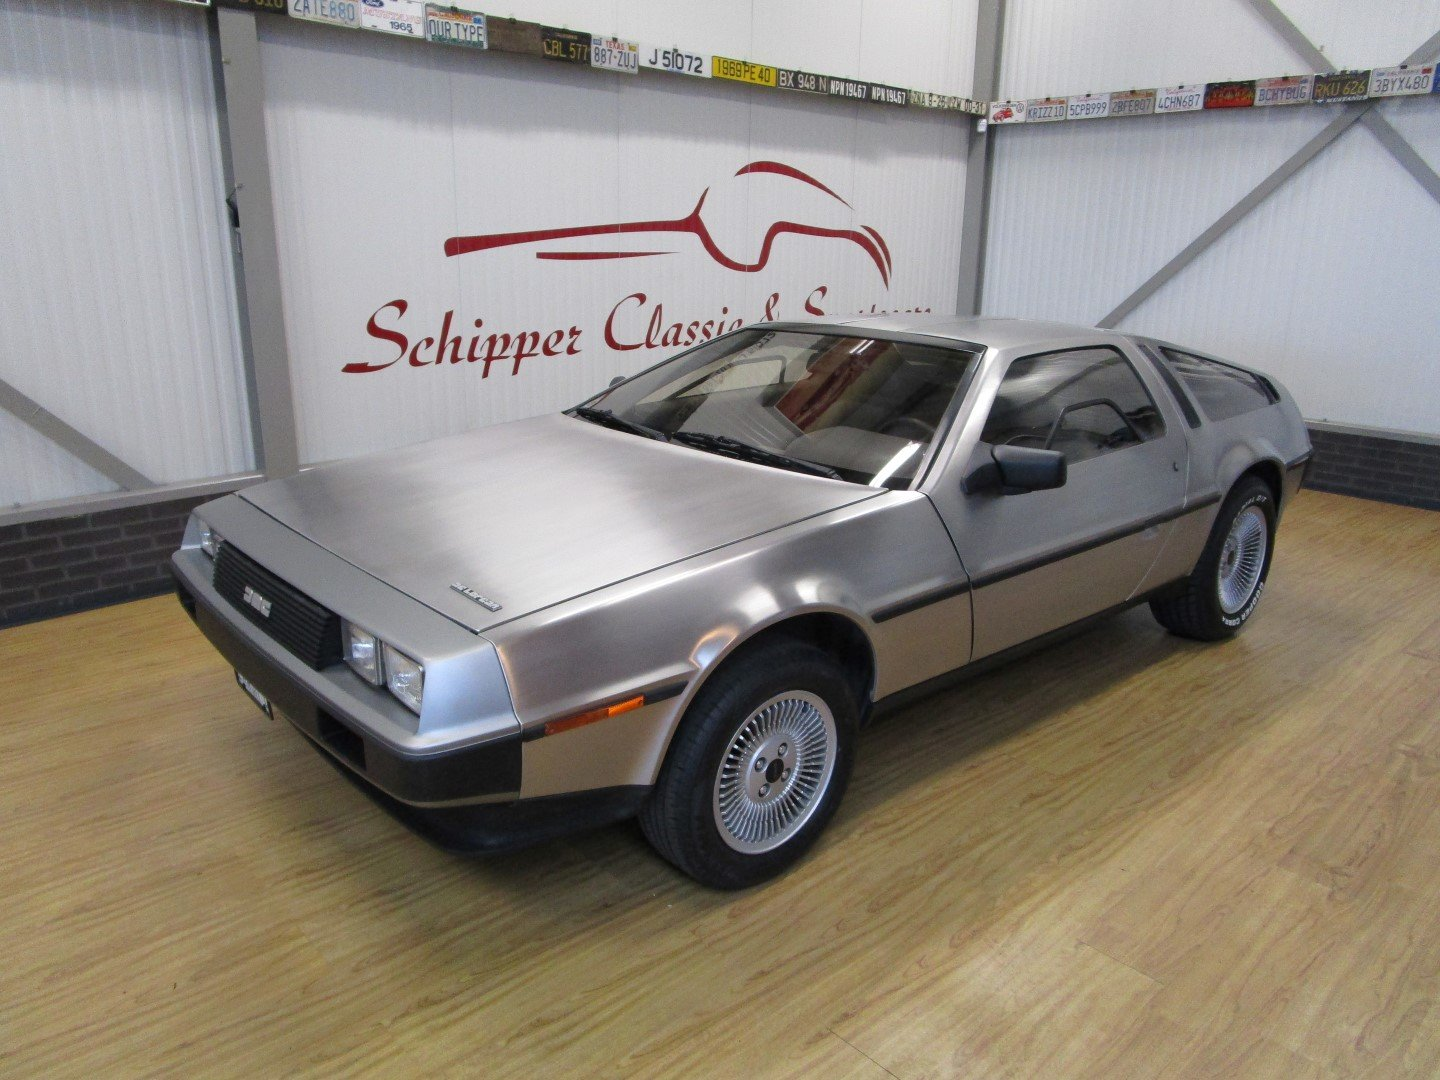 1983 DeLorean DMC-12 For Sale (picture 1 of 6)